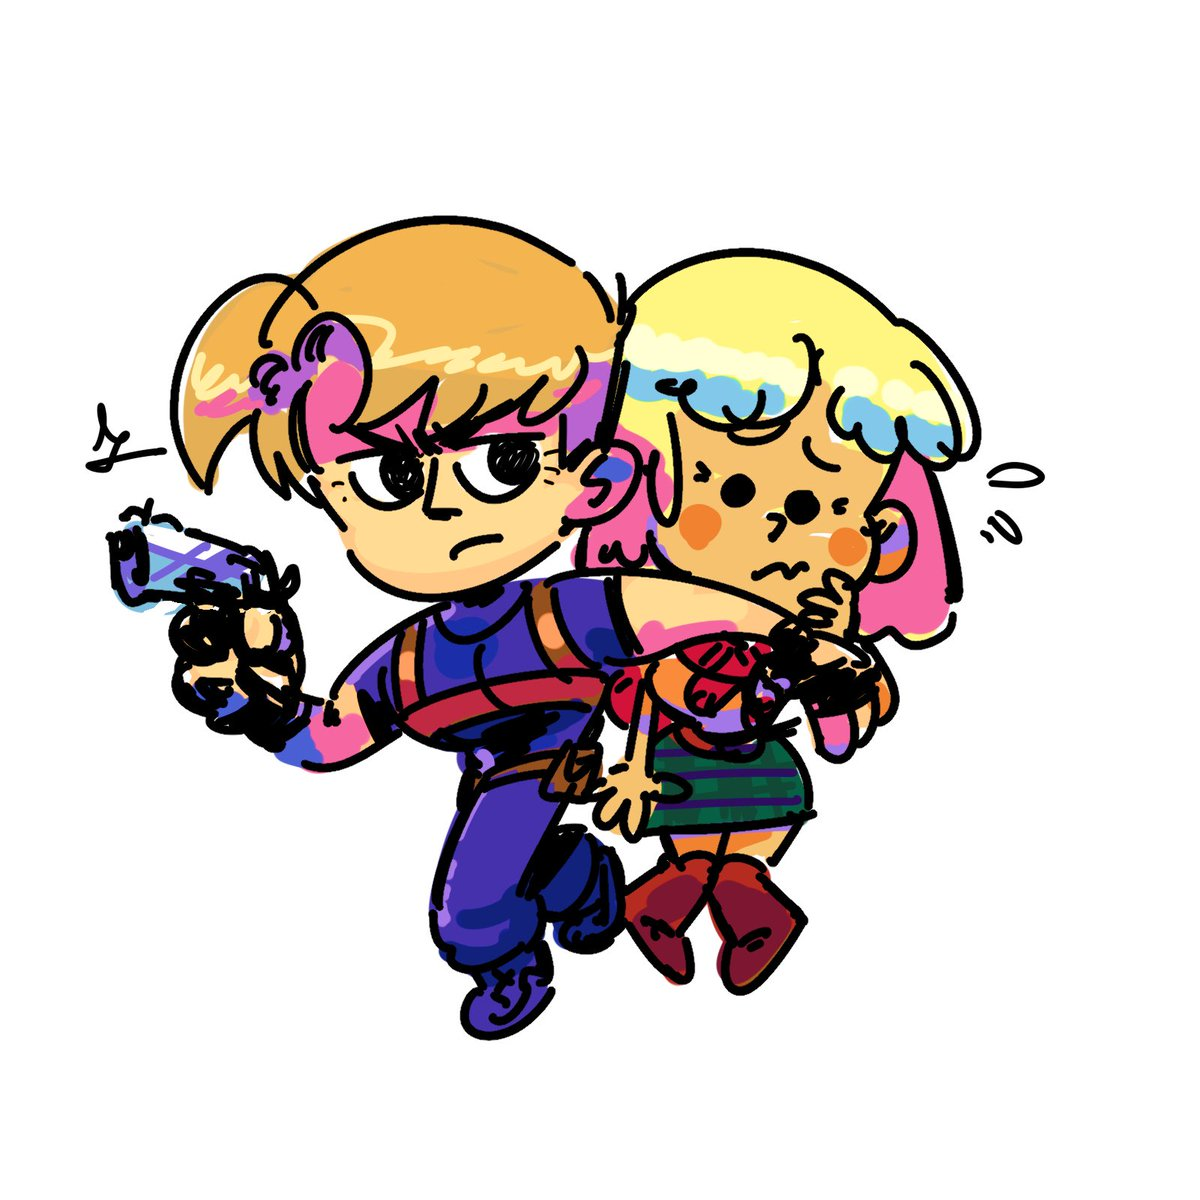 RT @cigardoesart: RE4 leon and ashley doodle https://t.co/V0pcqBo531